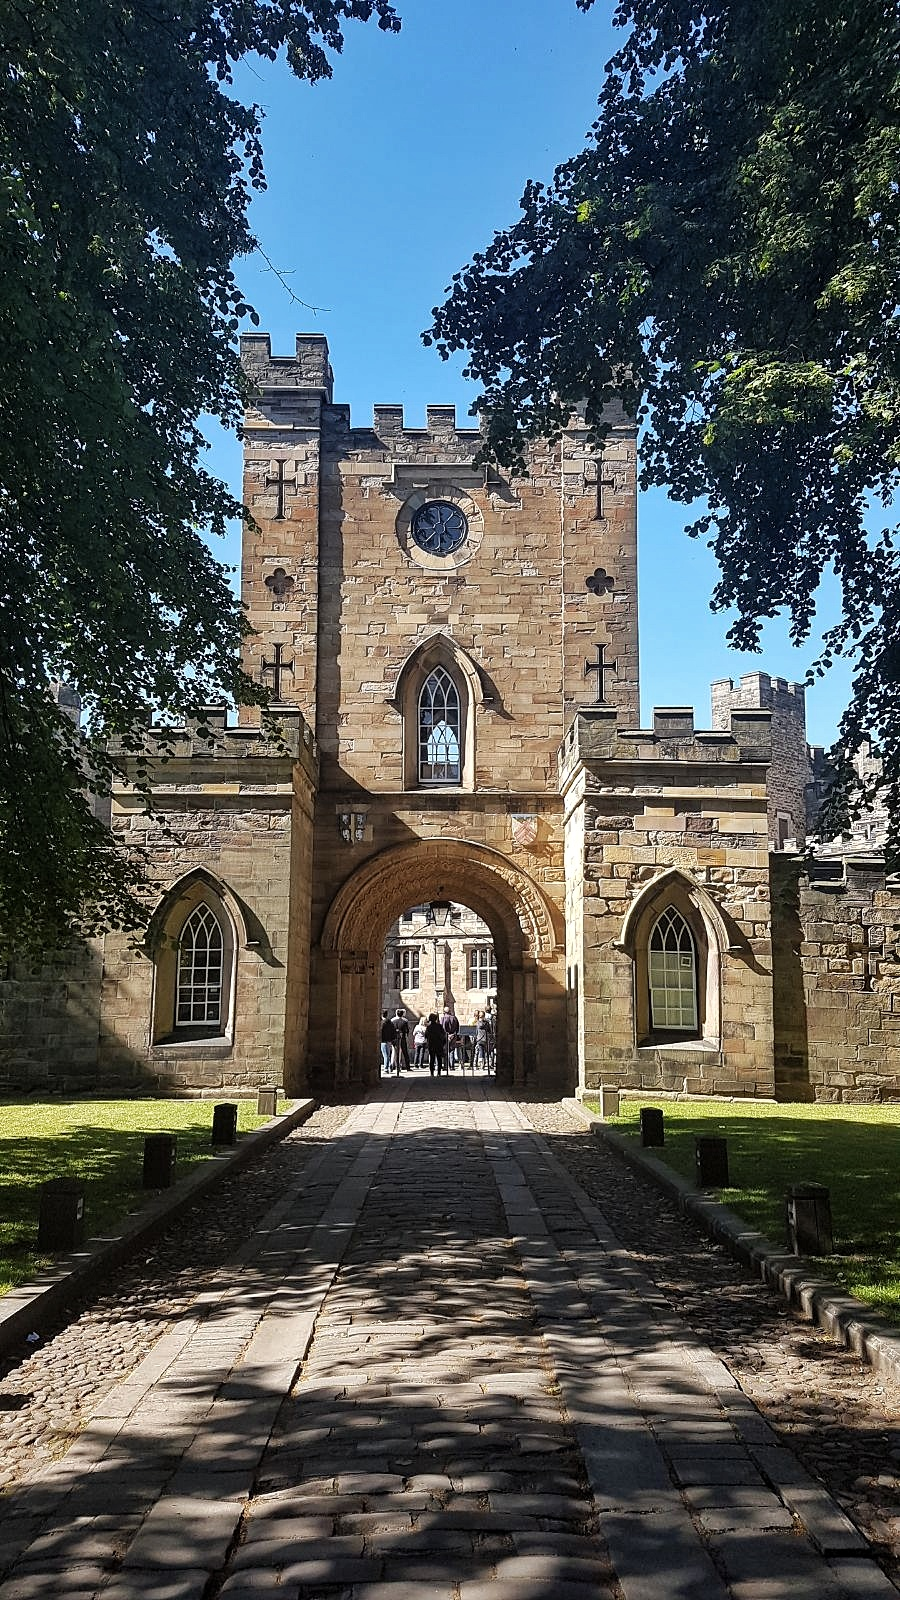 Durham Castle Gate - Your virtual guide to exploring the city of Durham UK . Come have a look! >>www.whatsupcourtney.com